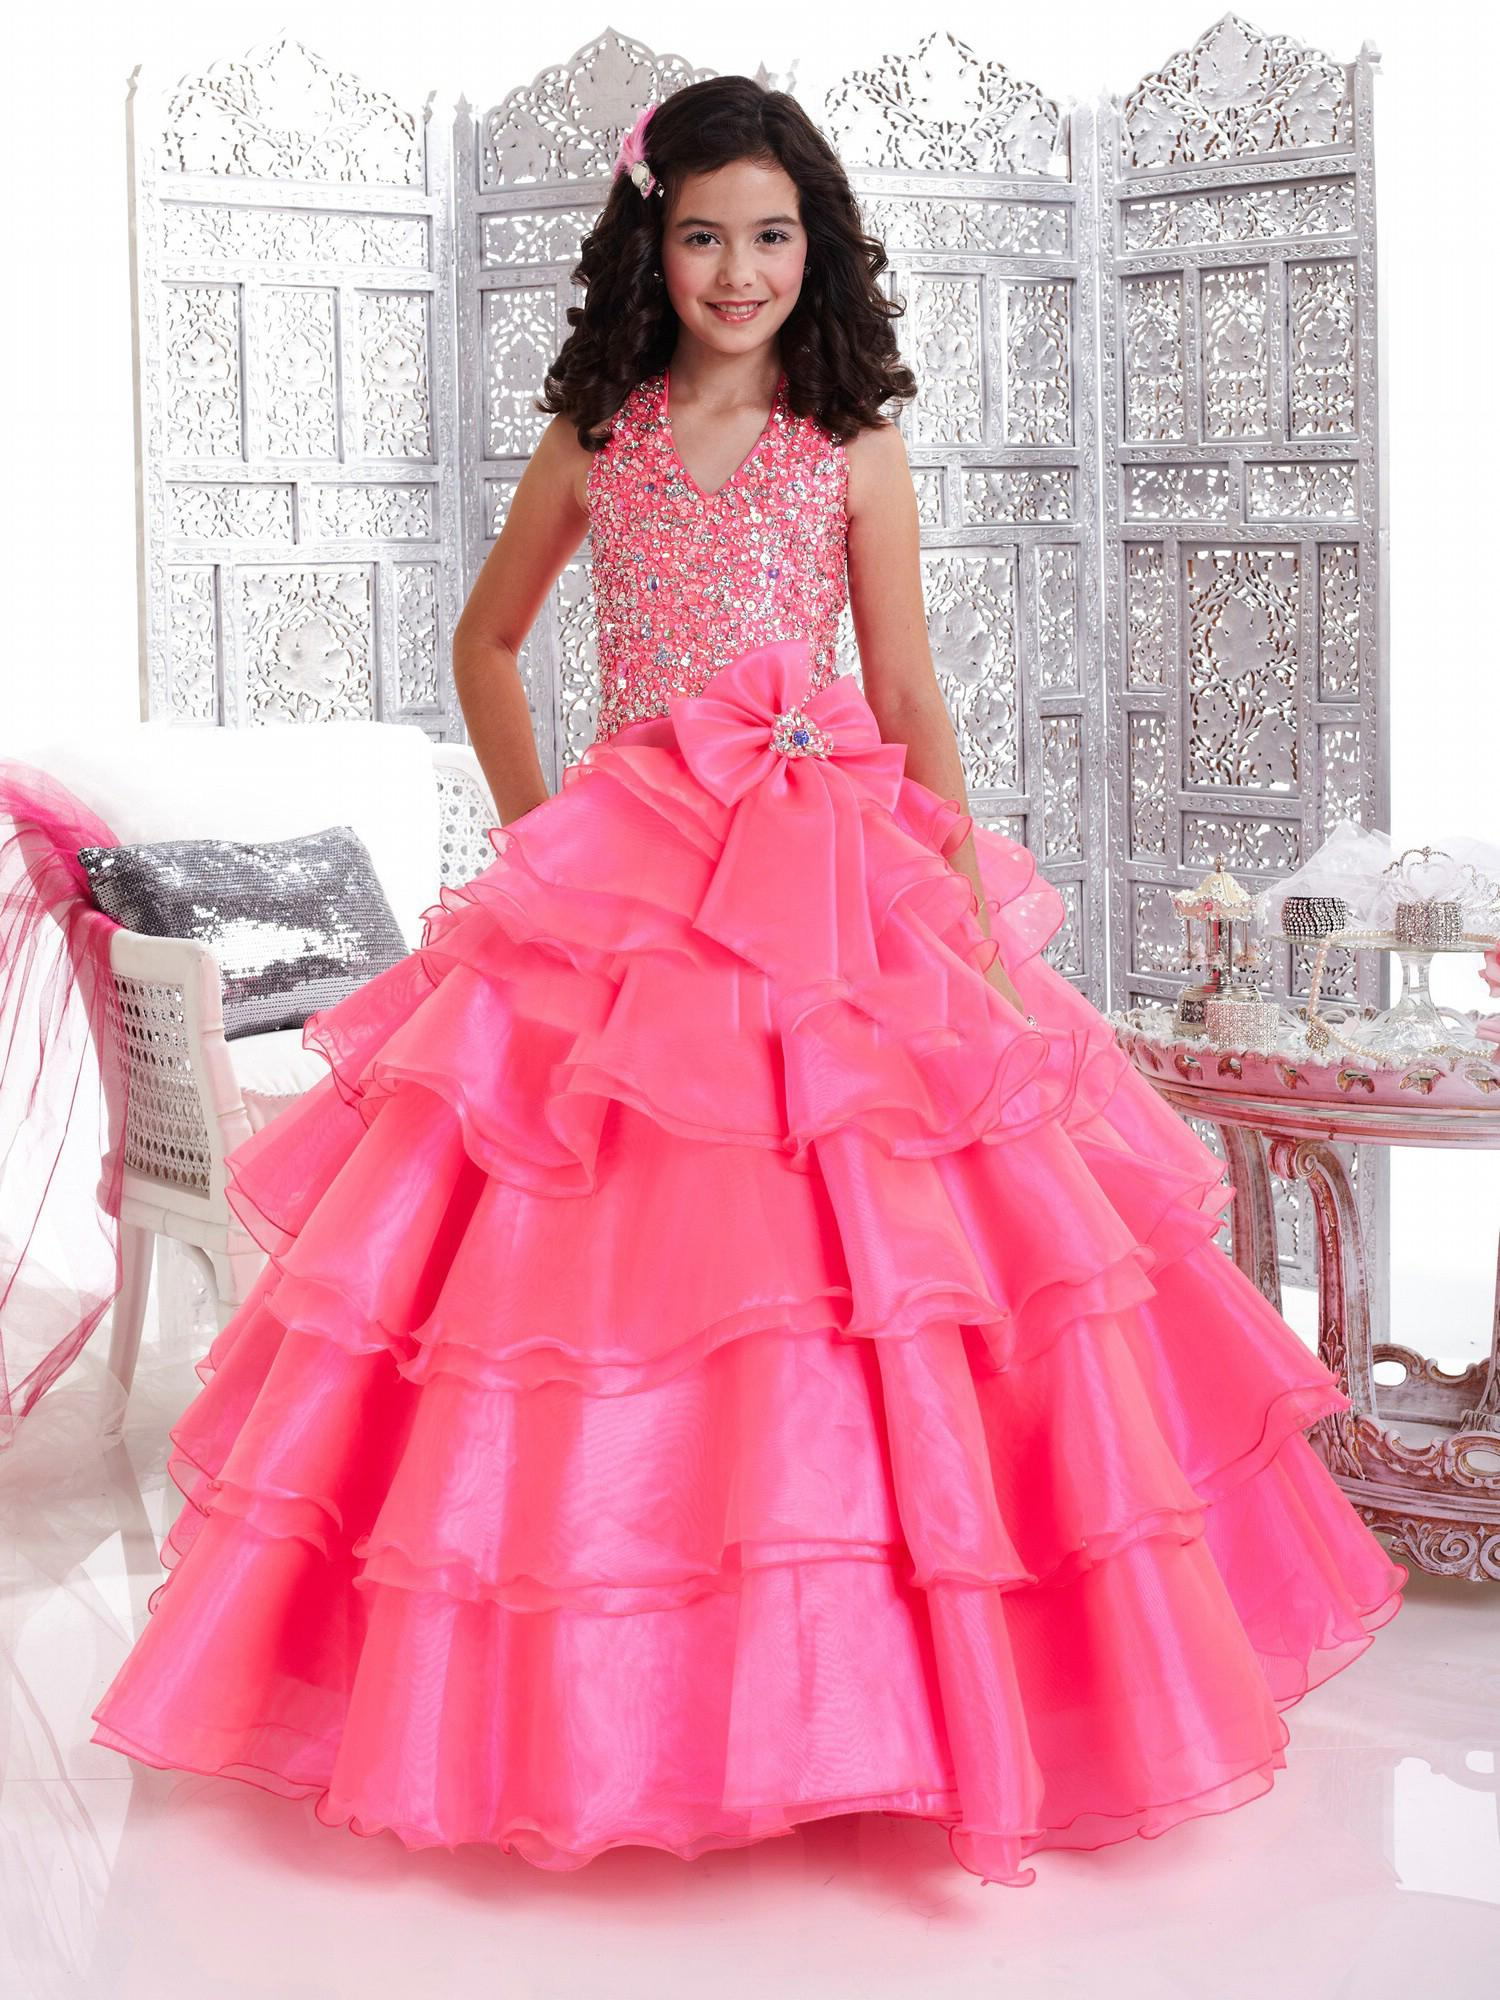 a4d3b1813612 girls pageant dresses clearance - Dress Yp